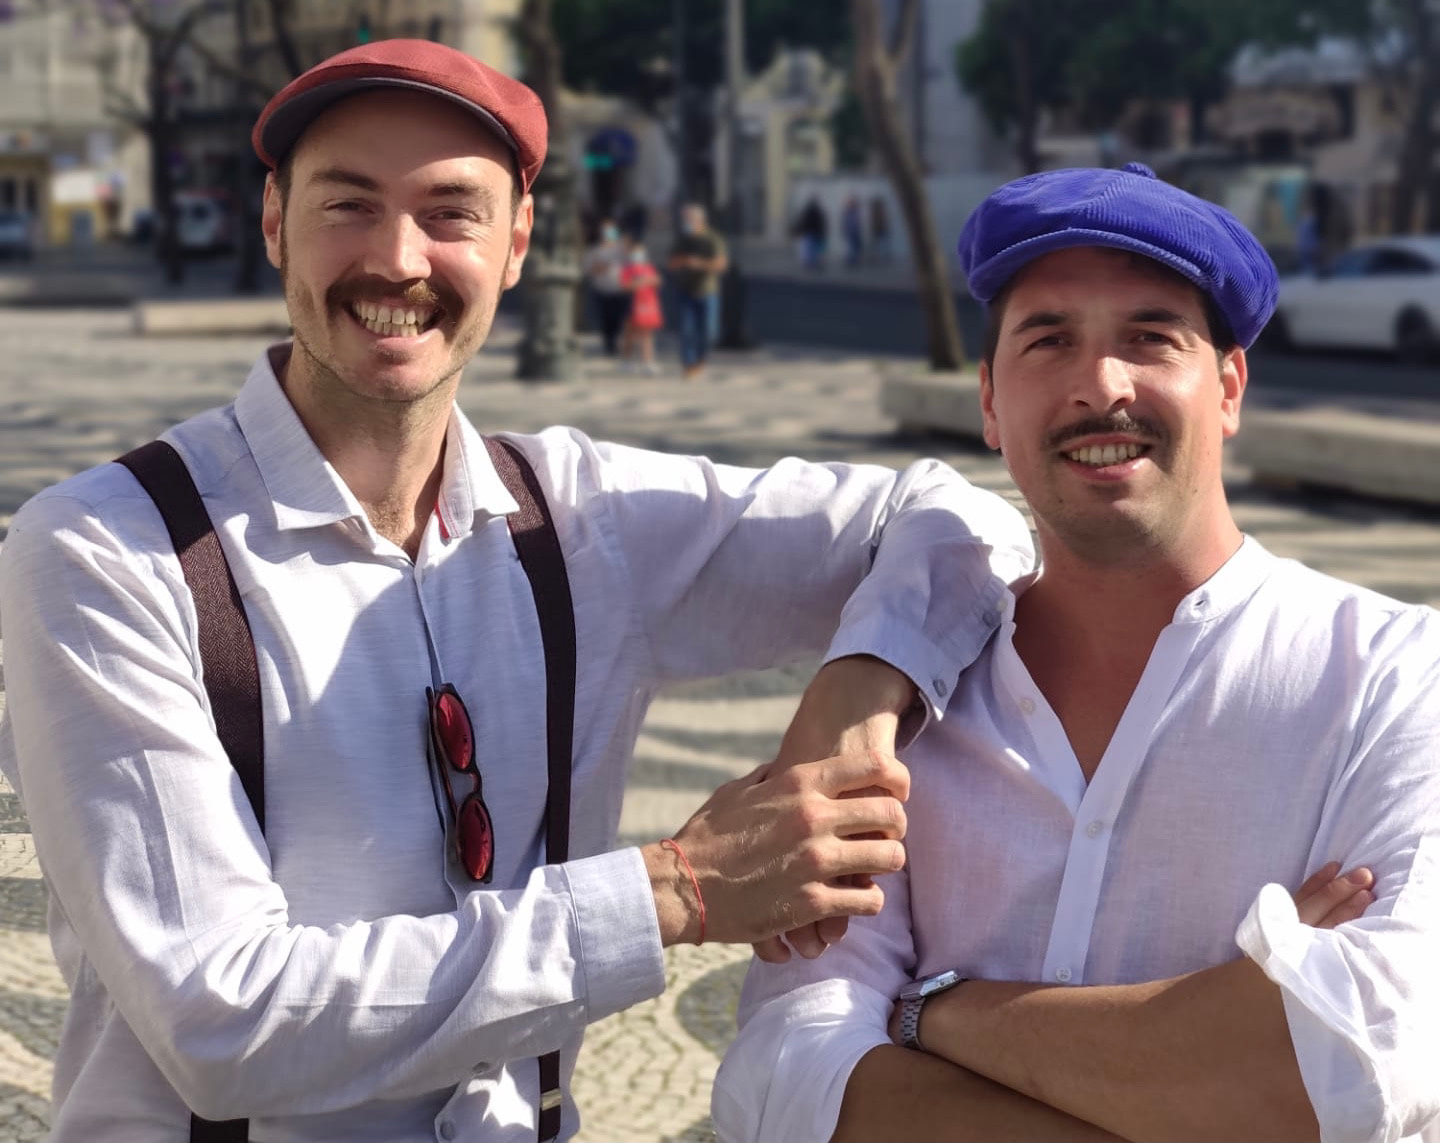 Elliot and Sylvain, the duo who have been running the company VisitmyLisbon.com for over 5 years